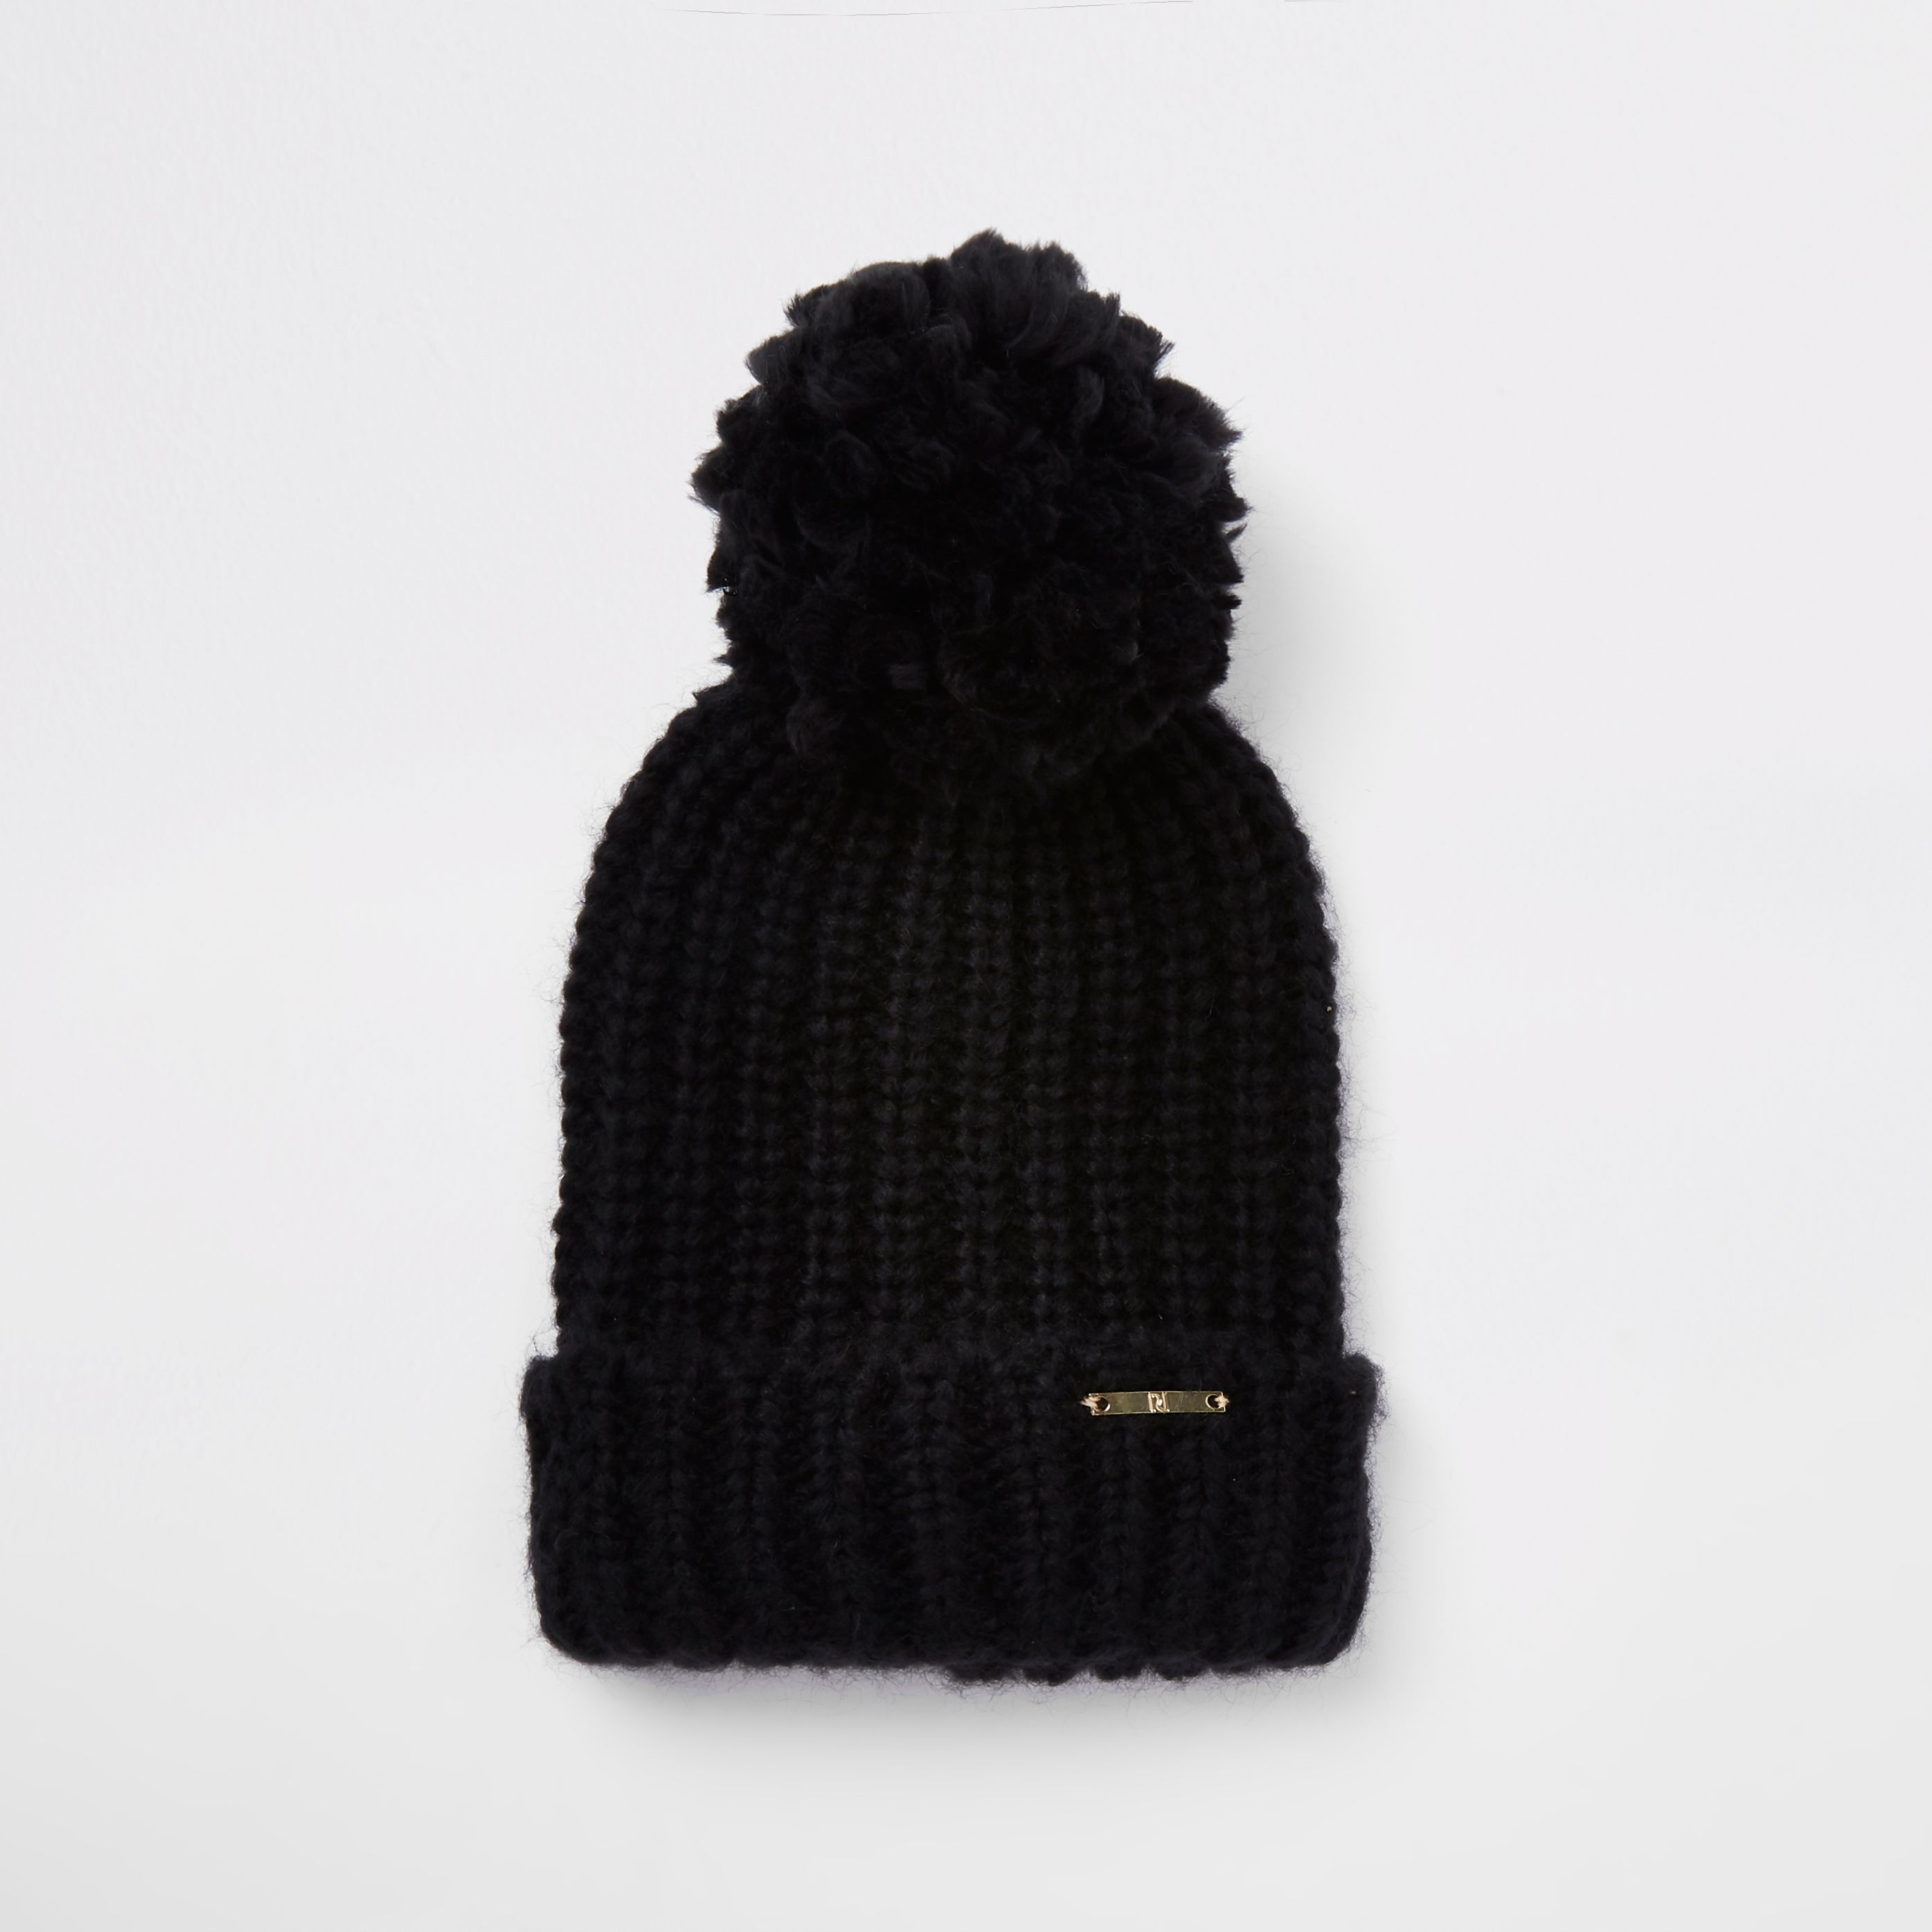 c5683832950 Black pom pom bobble top knit beanie hat in 2019